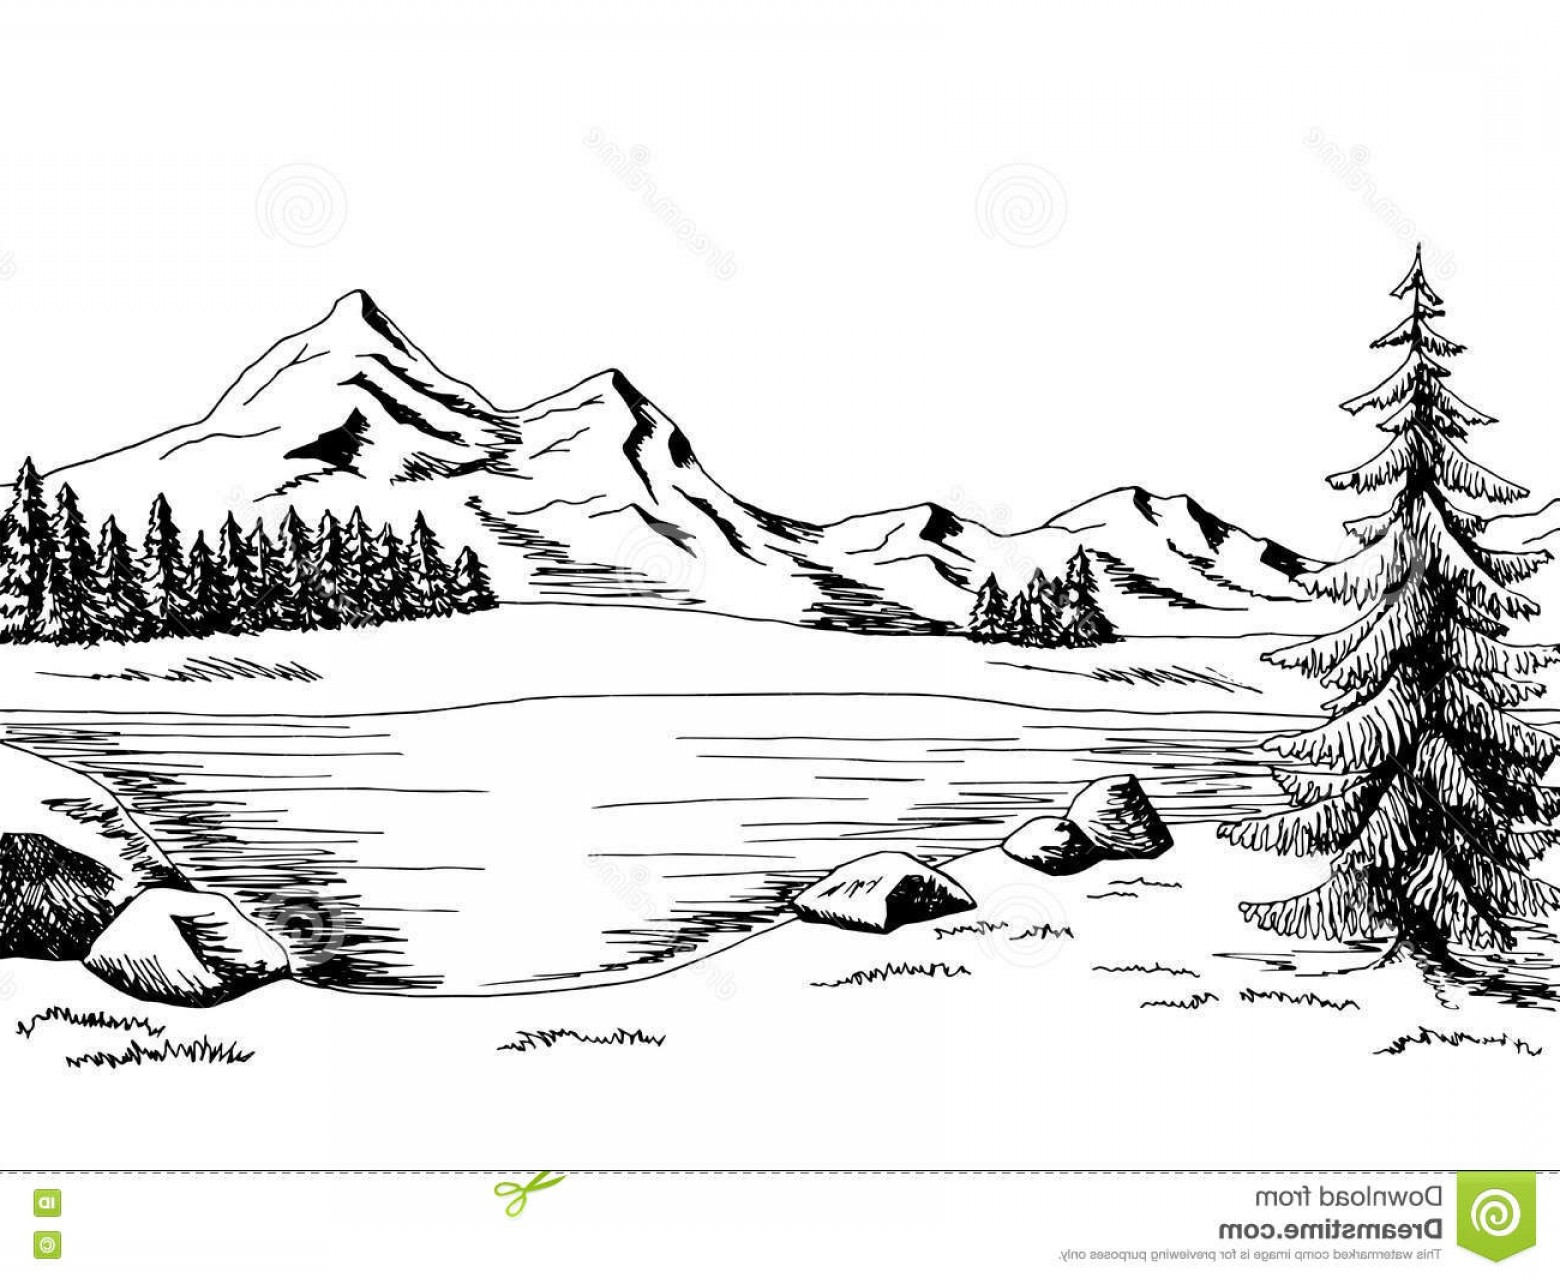 Cartoon mountain lake and tree clipart black and white picture royalty free Stock Illustration Mountain Lake Graphic Art Black White Landscape ... picture royalty free